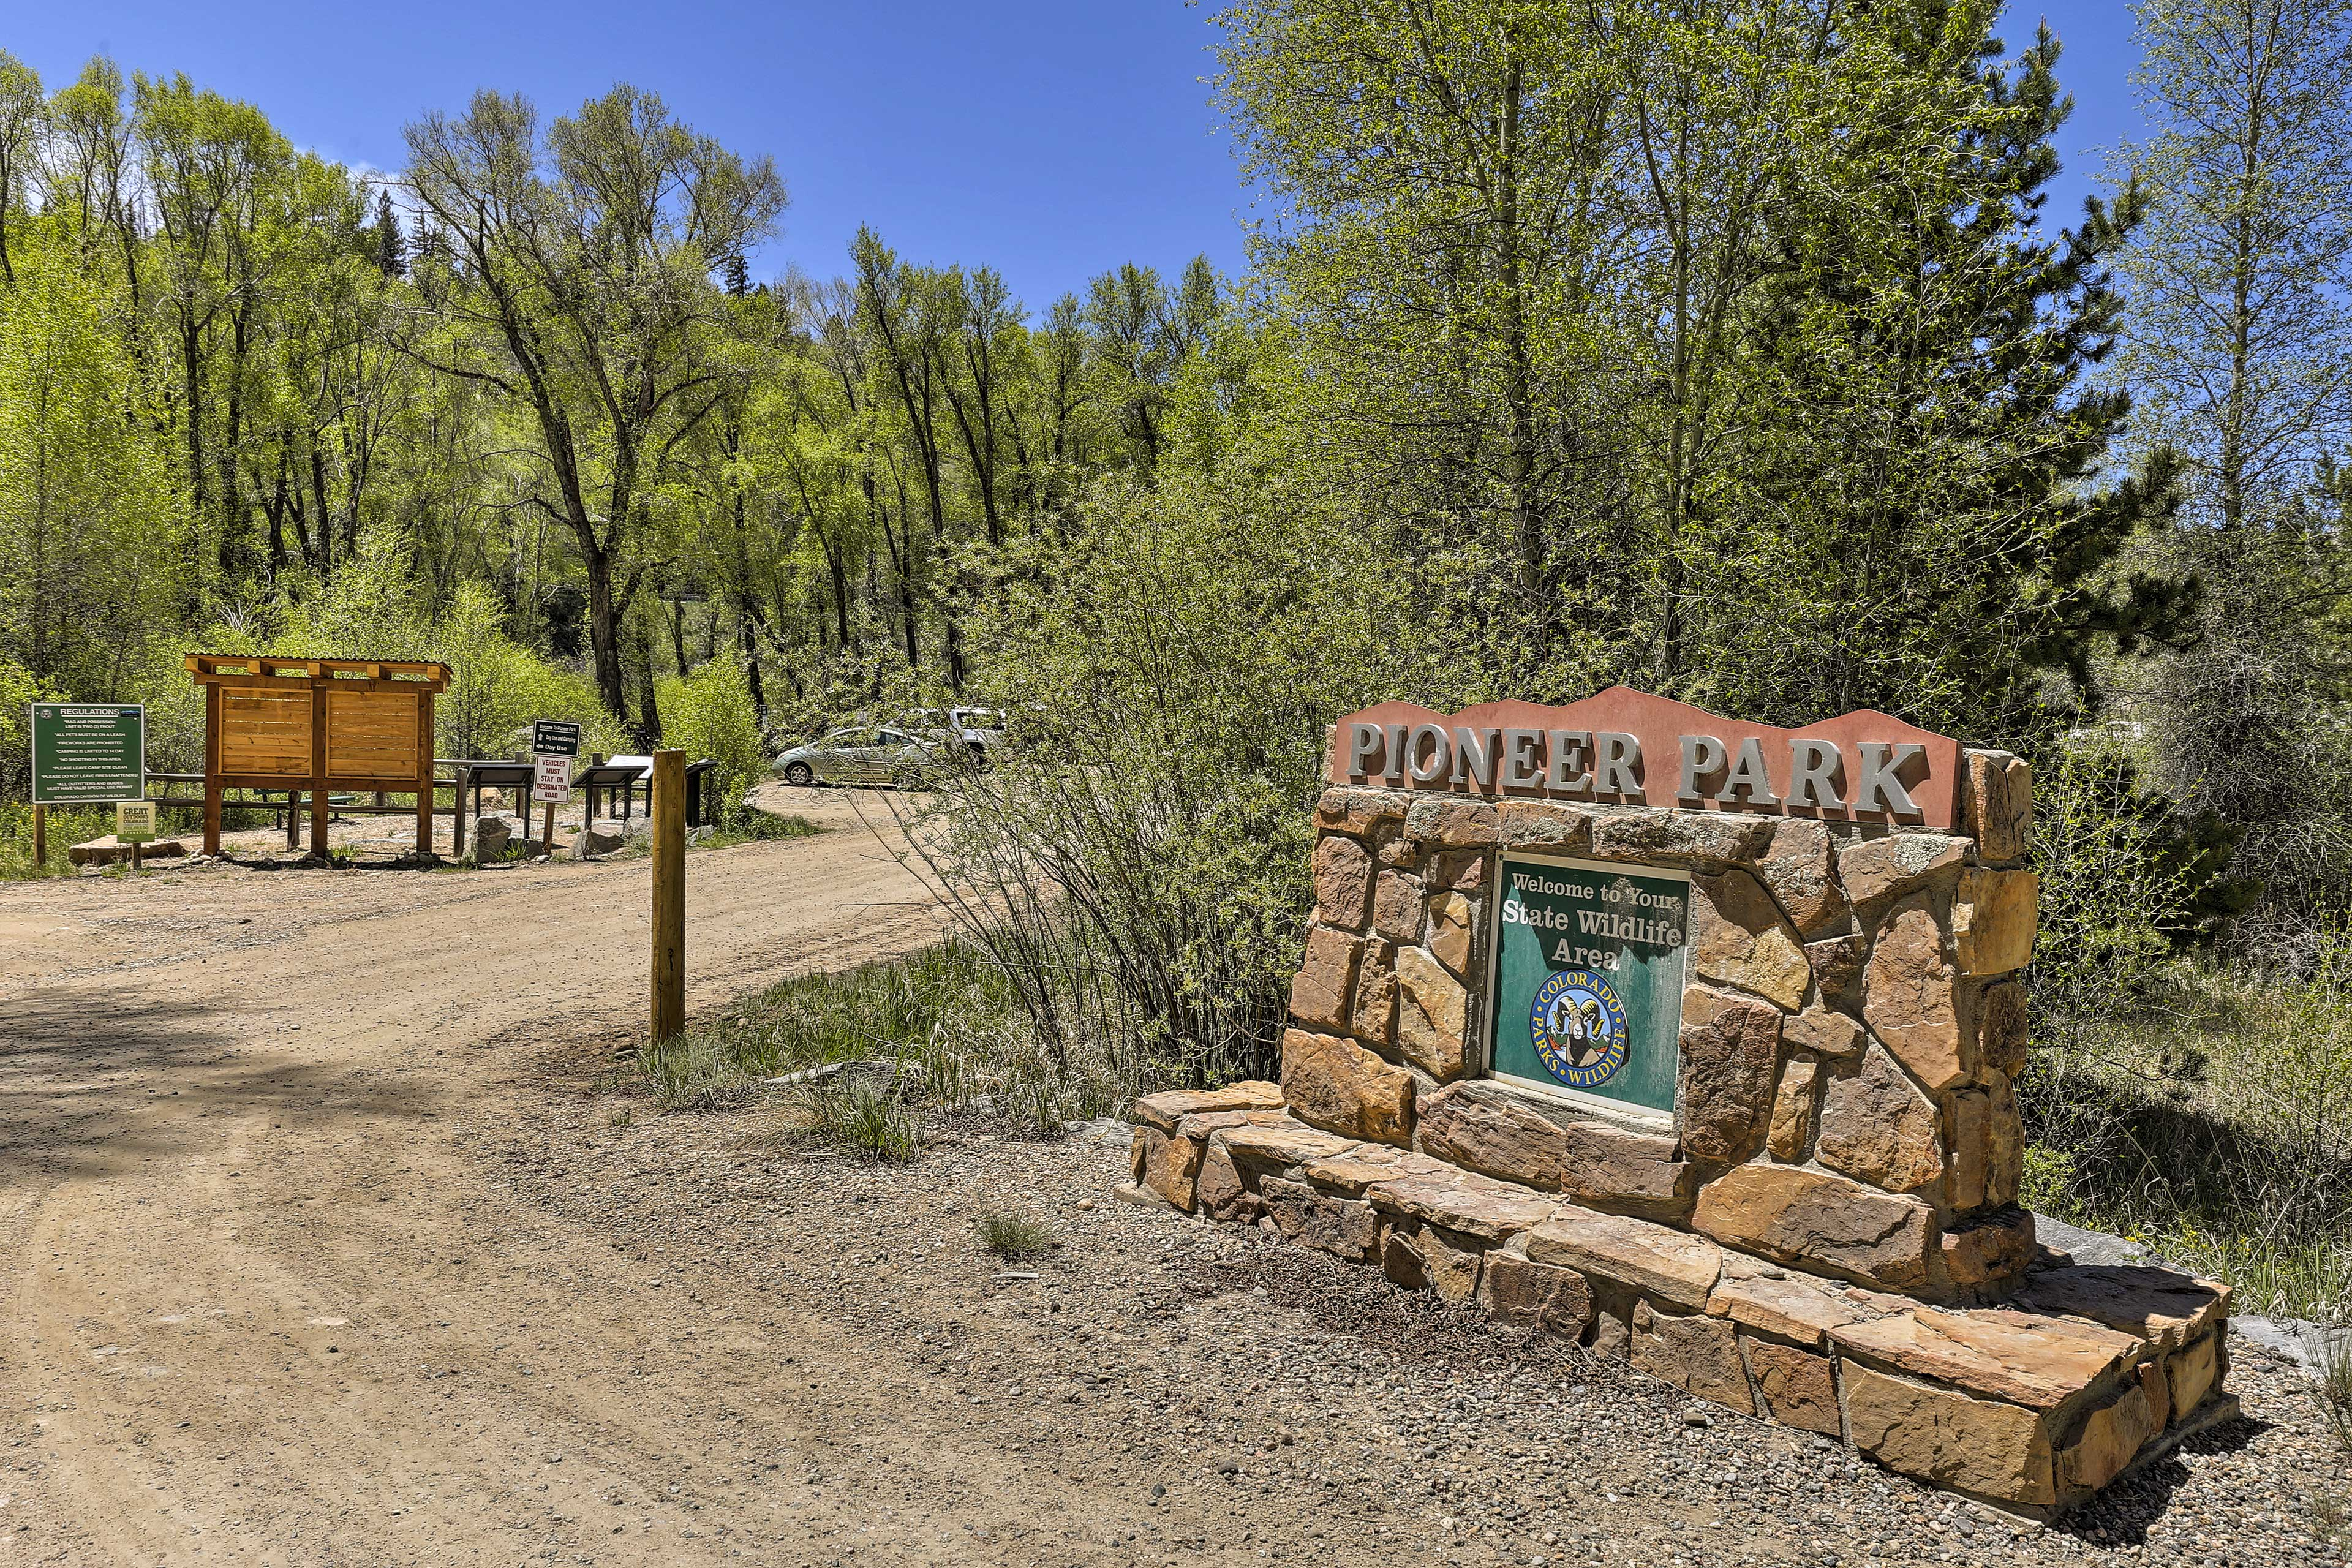 Explore nature at Pioneer Park, 5 minutes from the cottage.